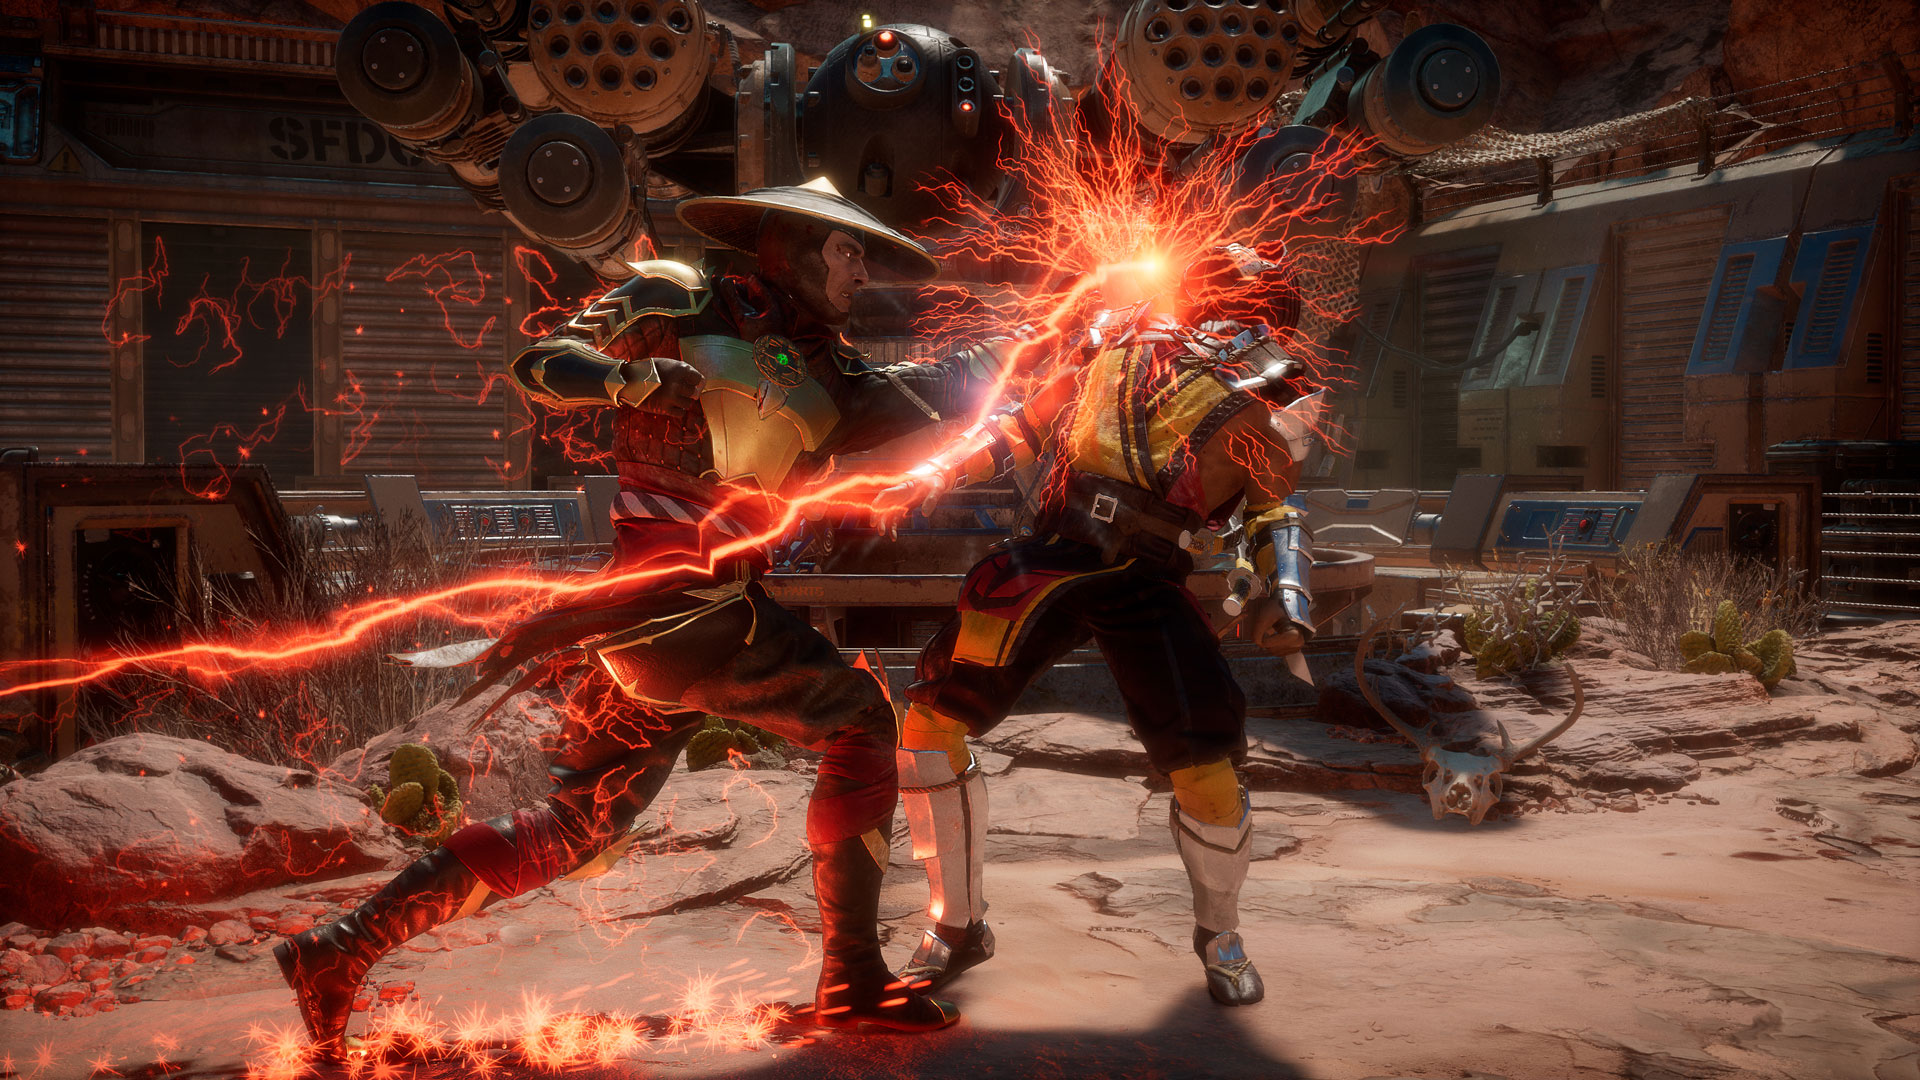 MORTAL KOMBAT 11 (STEAM KEY) RU+CIS 2019